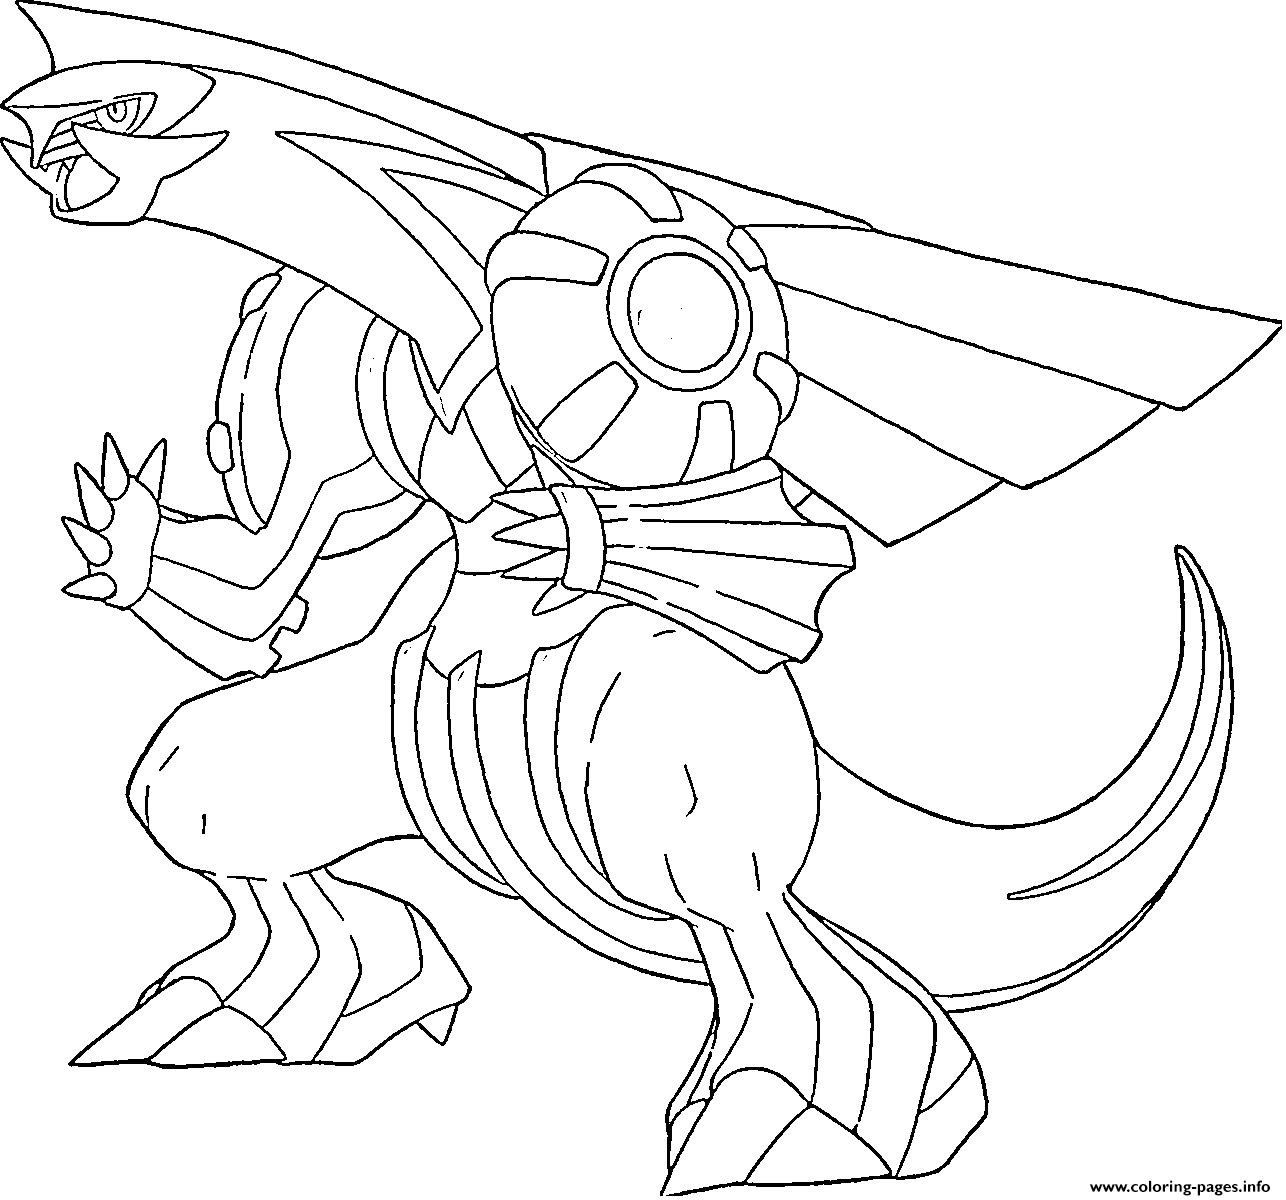 palkia coloring pages palkia pokemon coloring page palkia coloring pages